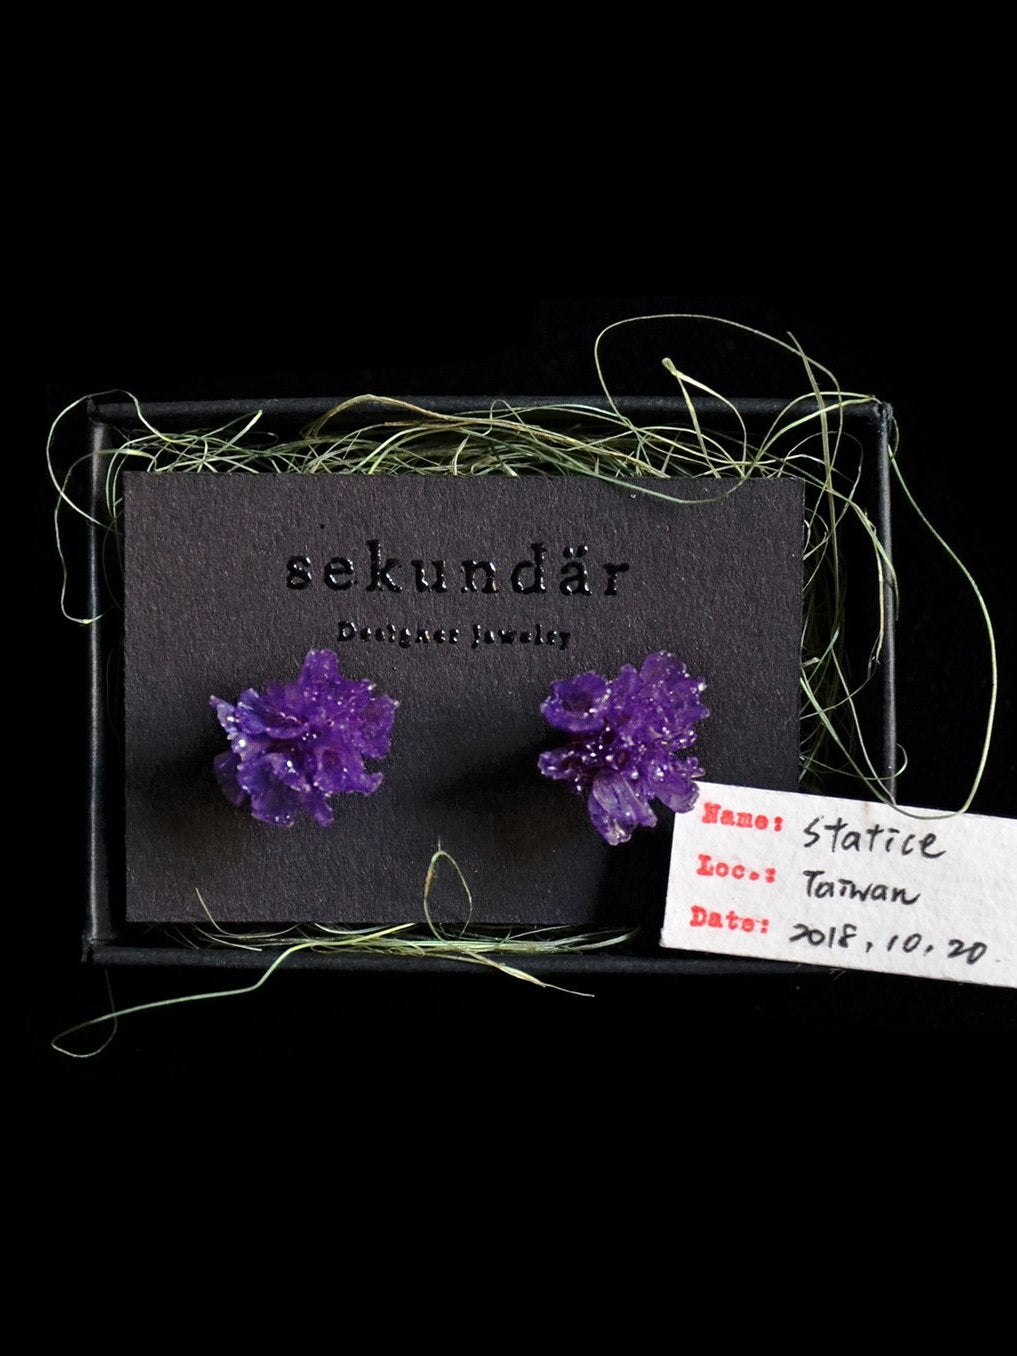 Sustainable Real Flower Earrings made from purple Taiwanese Statice | Nachhaltige Blumenohrringe aus echtem Taiwanesischem Sandglöckchen in lila